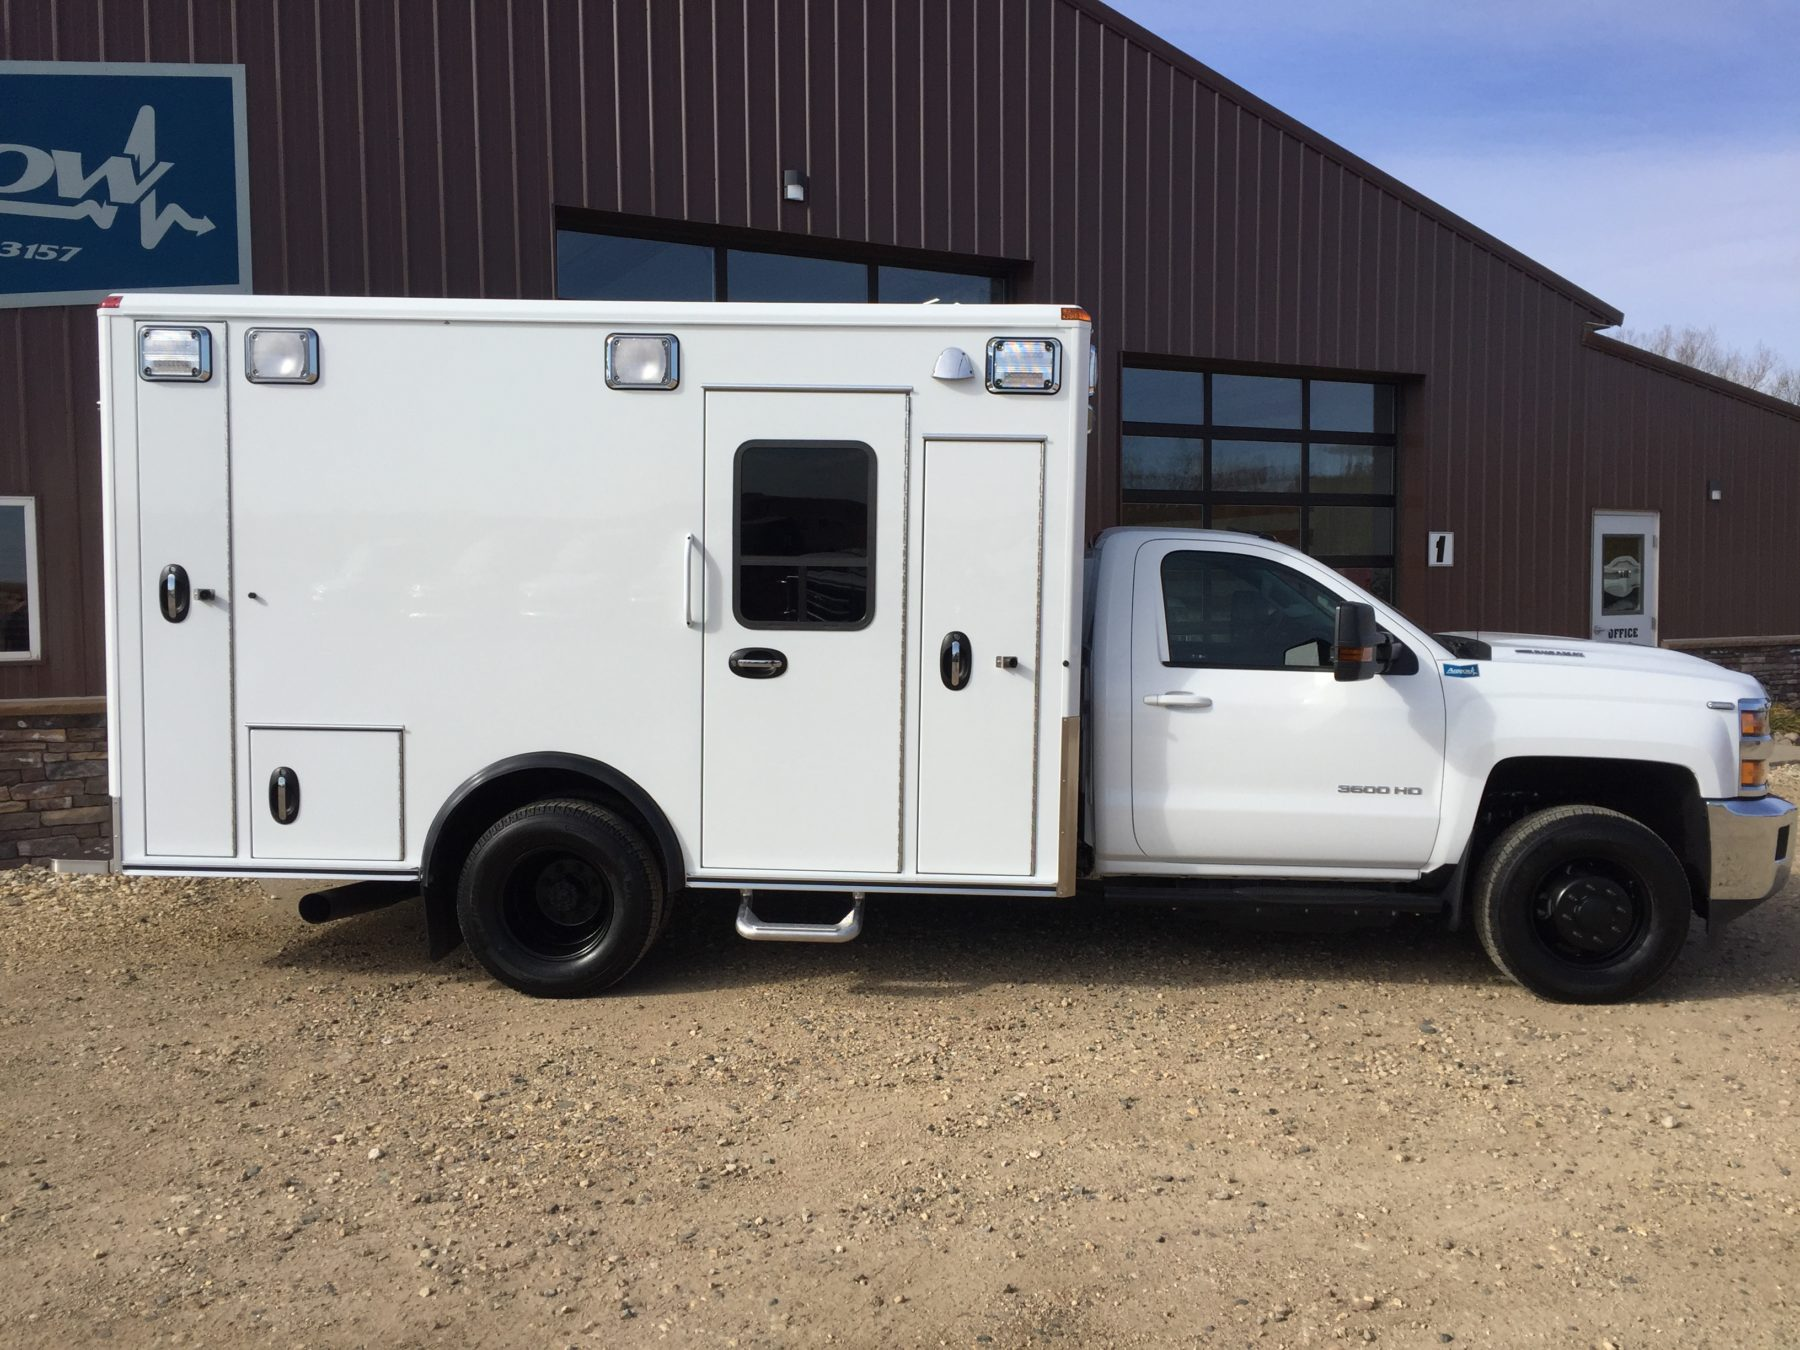 2019 Chevrolet K3500 4x4 Type 1 Ambulance For Sale – Picture 5